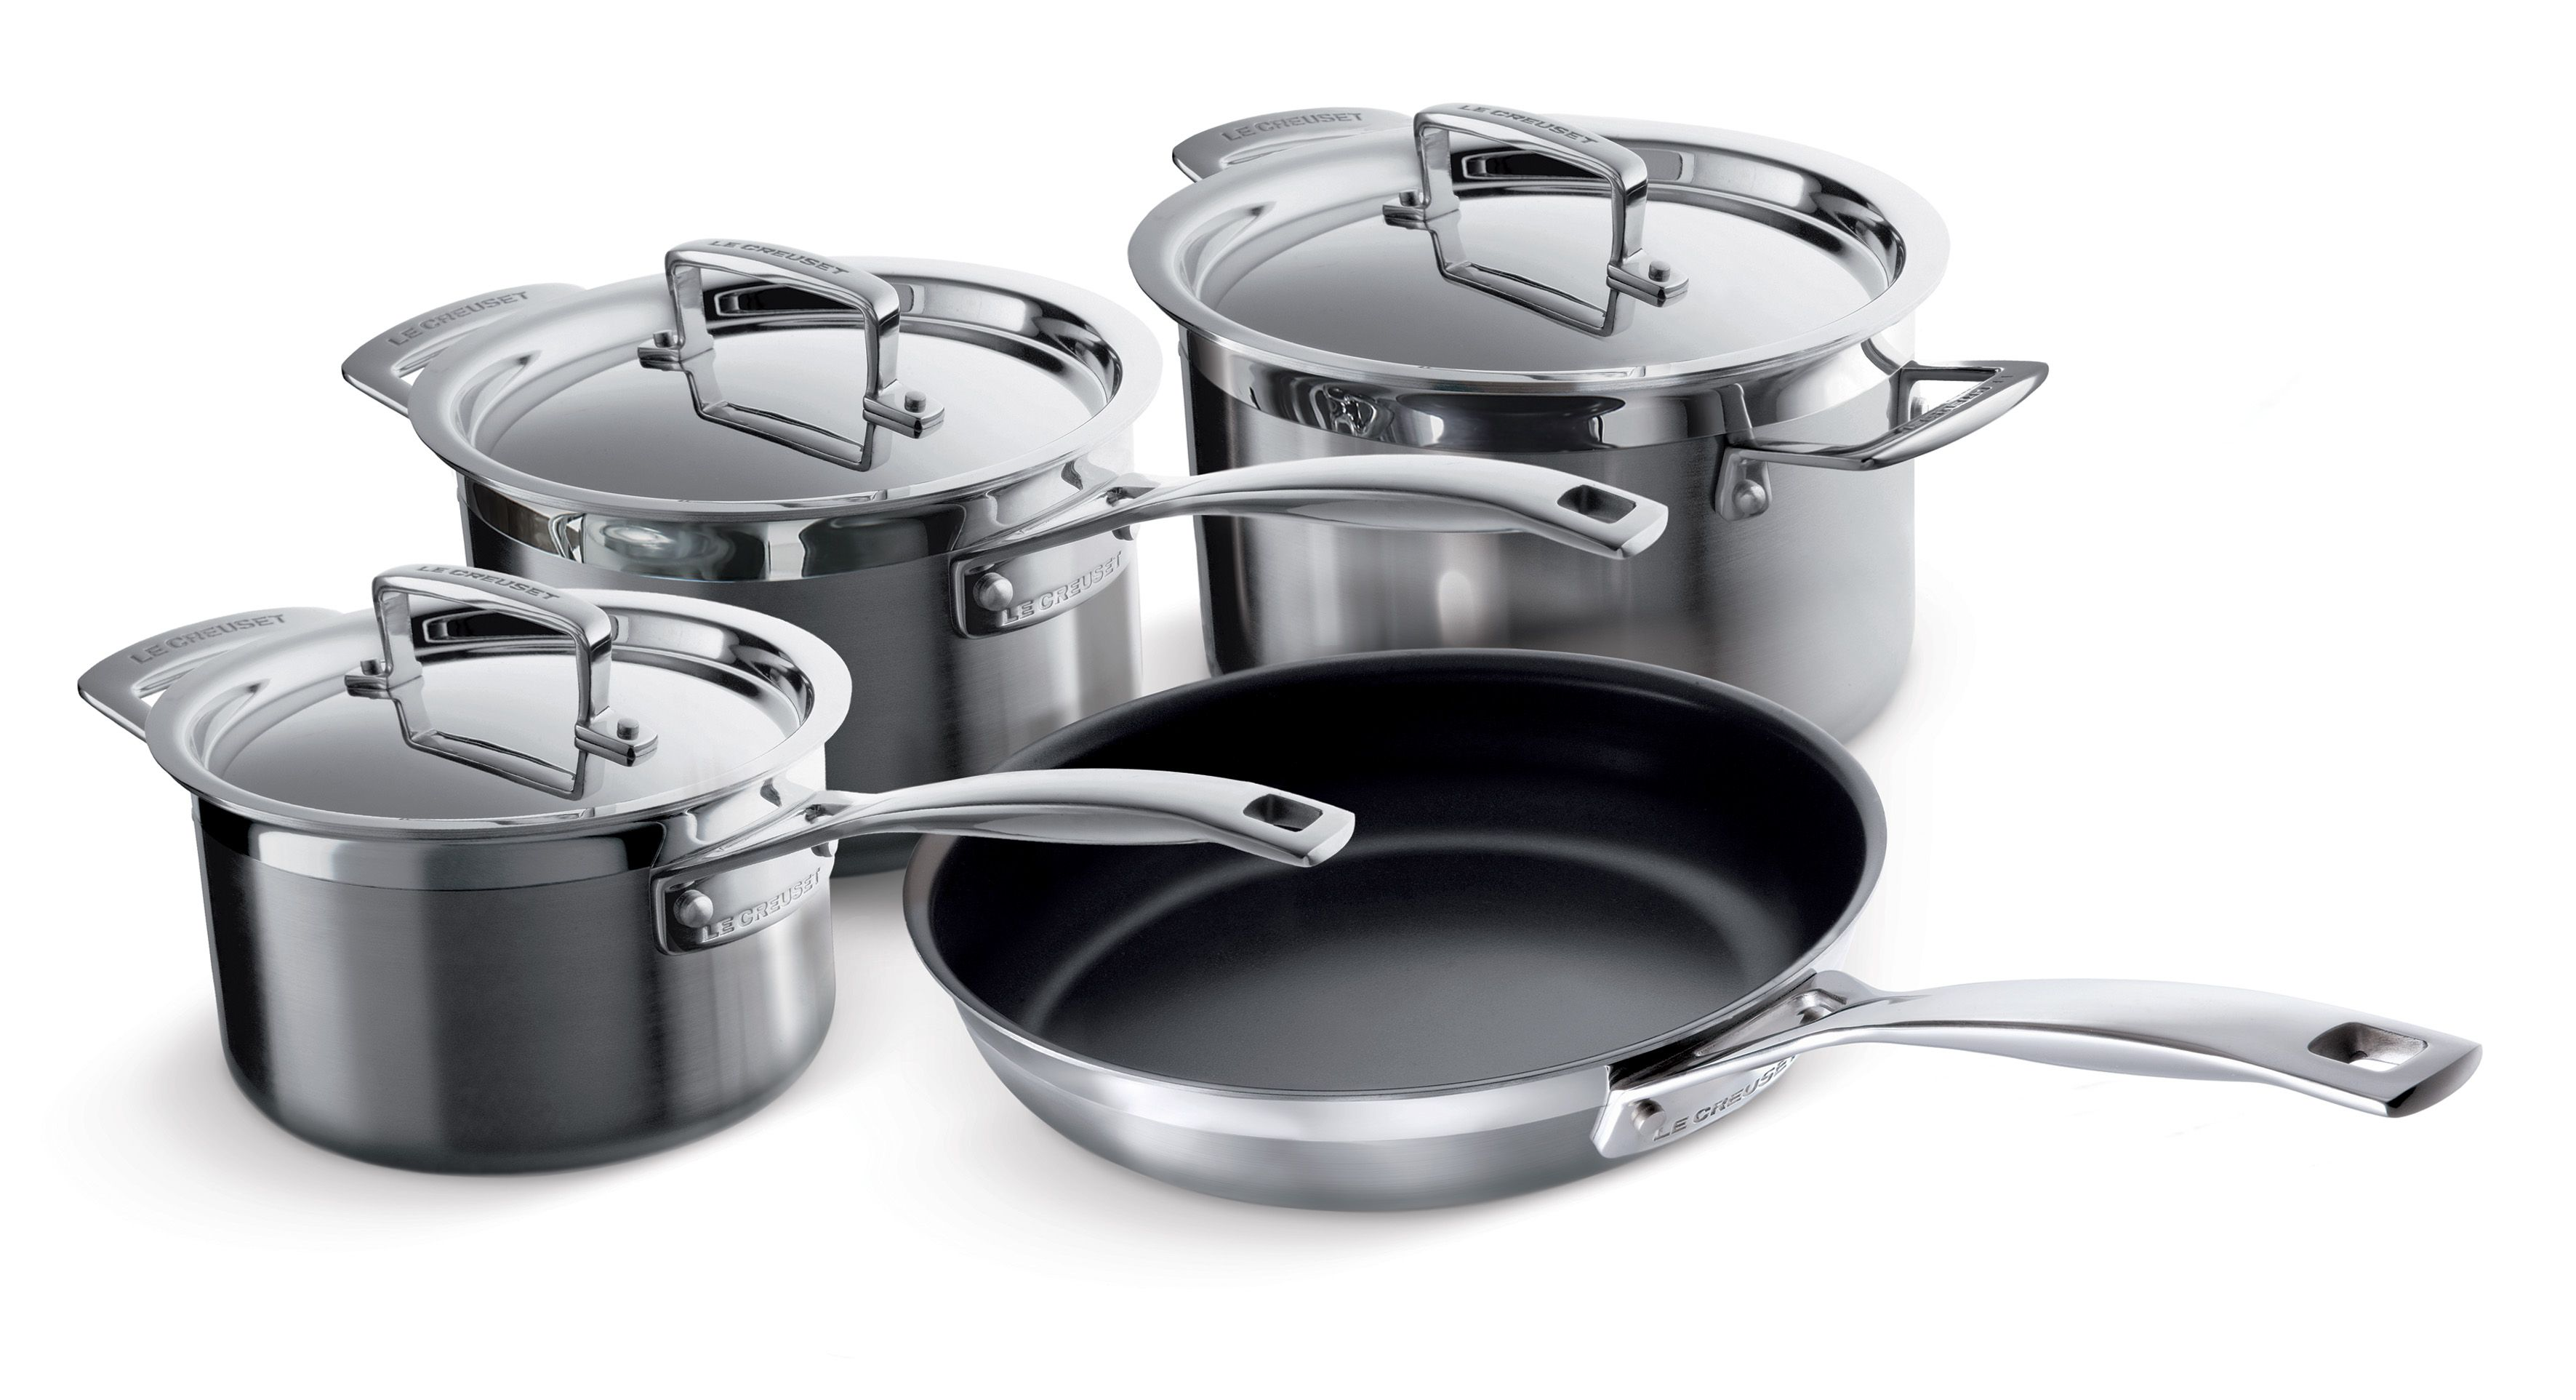 Stainless steel 4 piece pan set